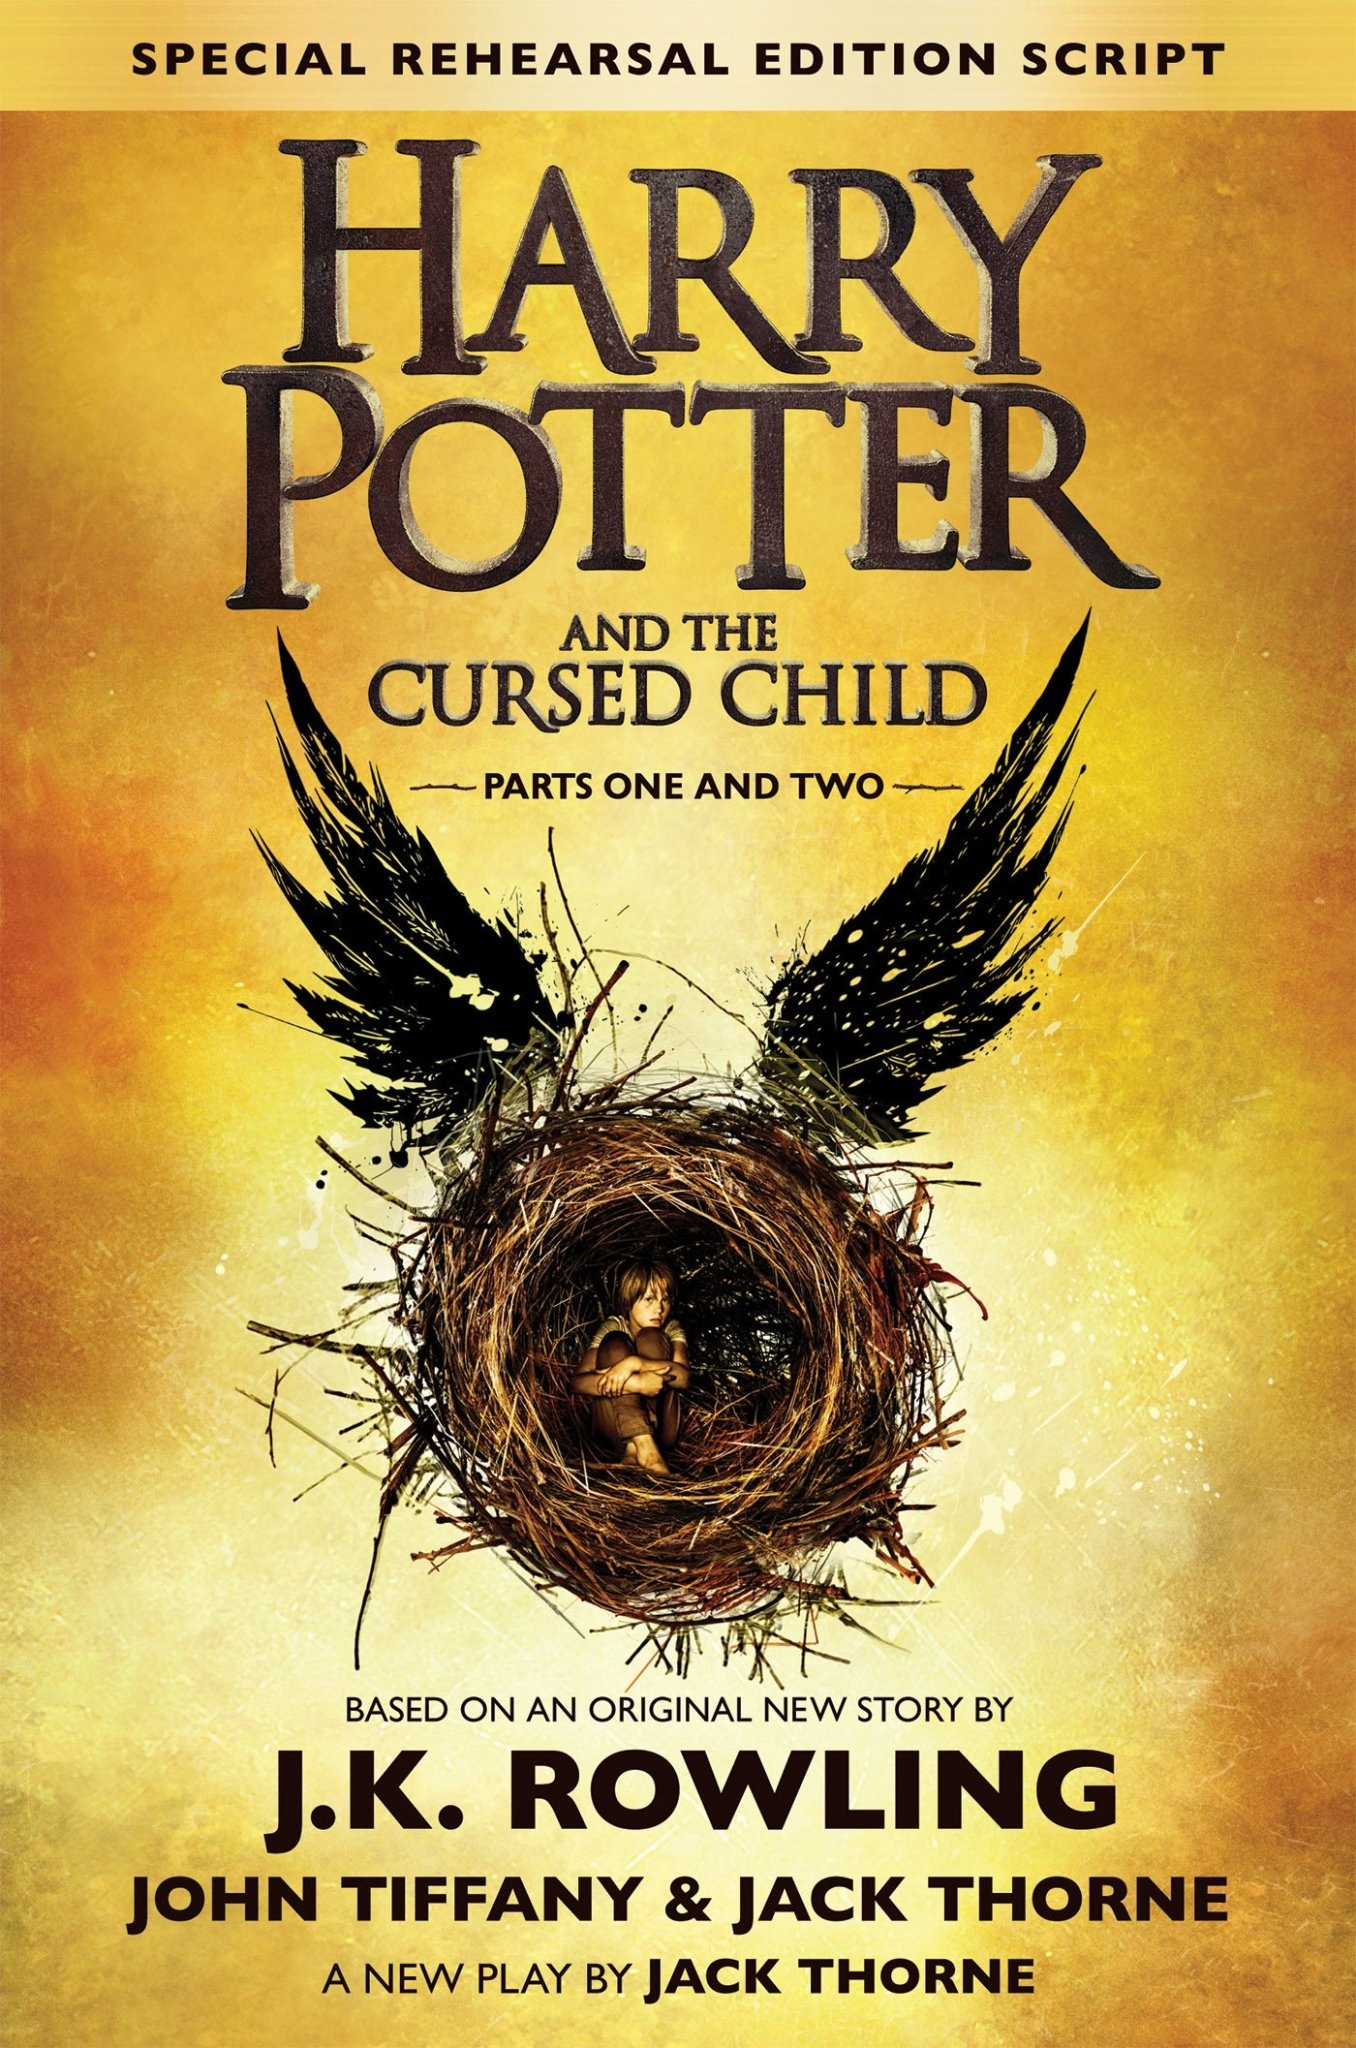 Harry Potter and the Cursed Child Parts One and Two (Special Rehearsal Edition Script)